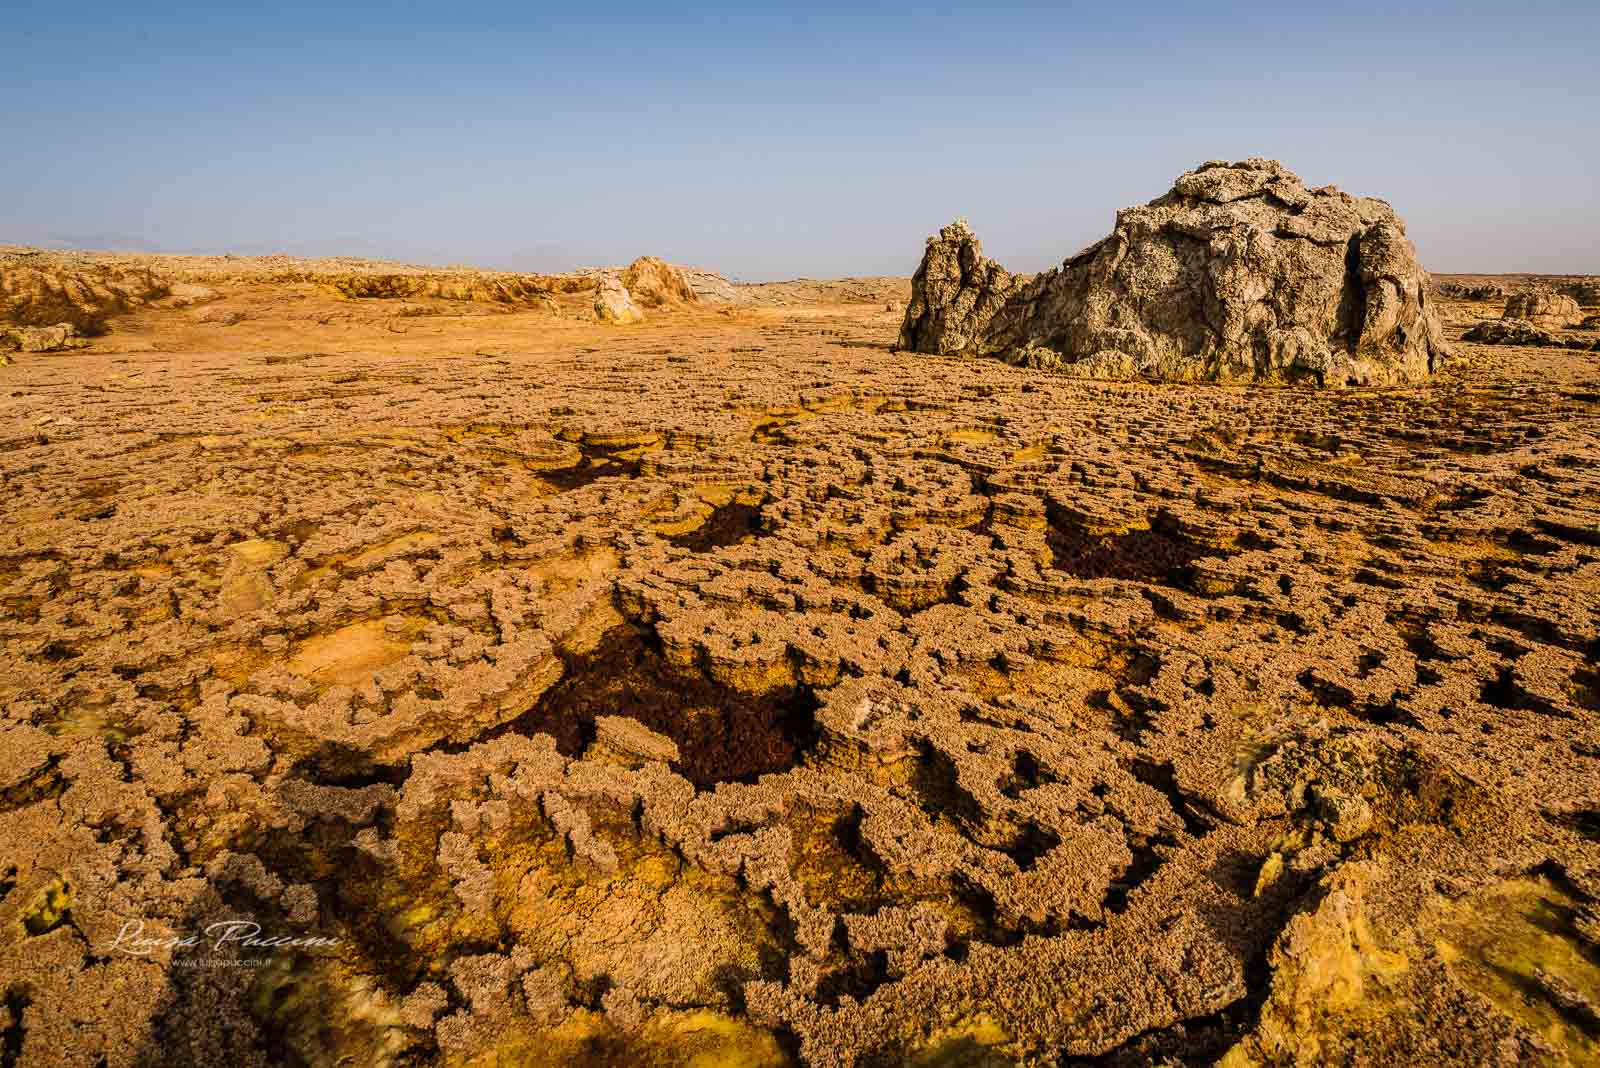 Dallol, danakil, Dancalia, depression, geyser, sulfureus, geological, formation, outdoor, adventure, africa, Ethiopia, luisa Puccini